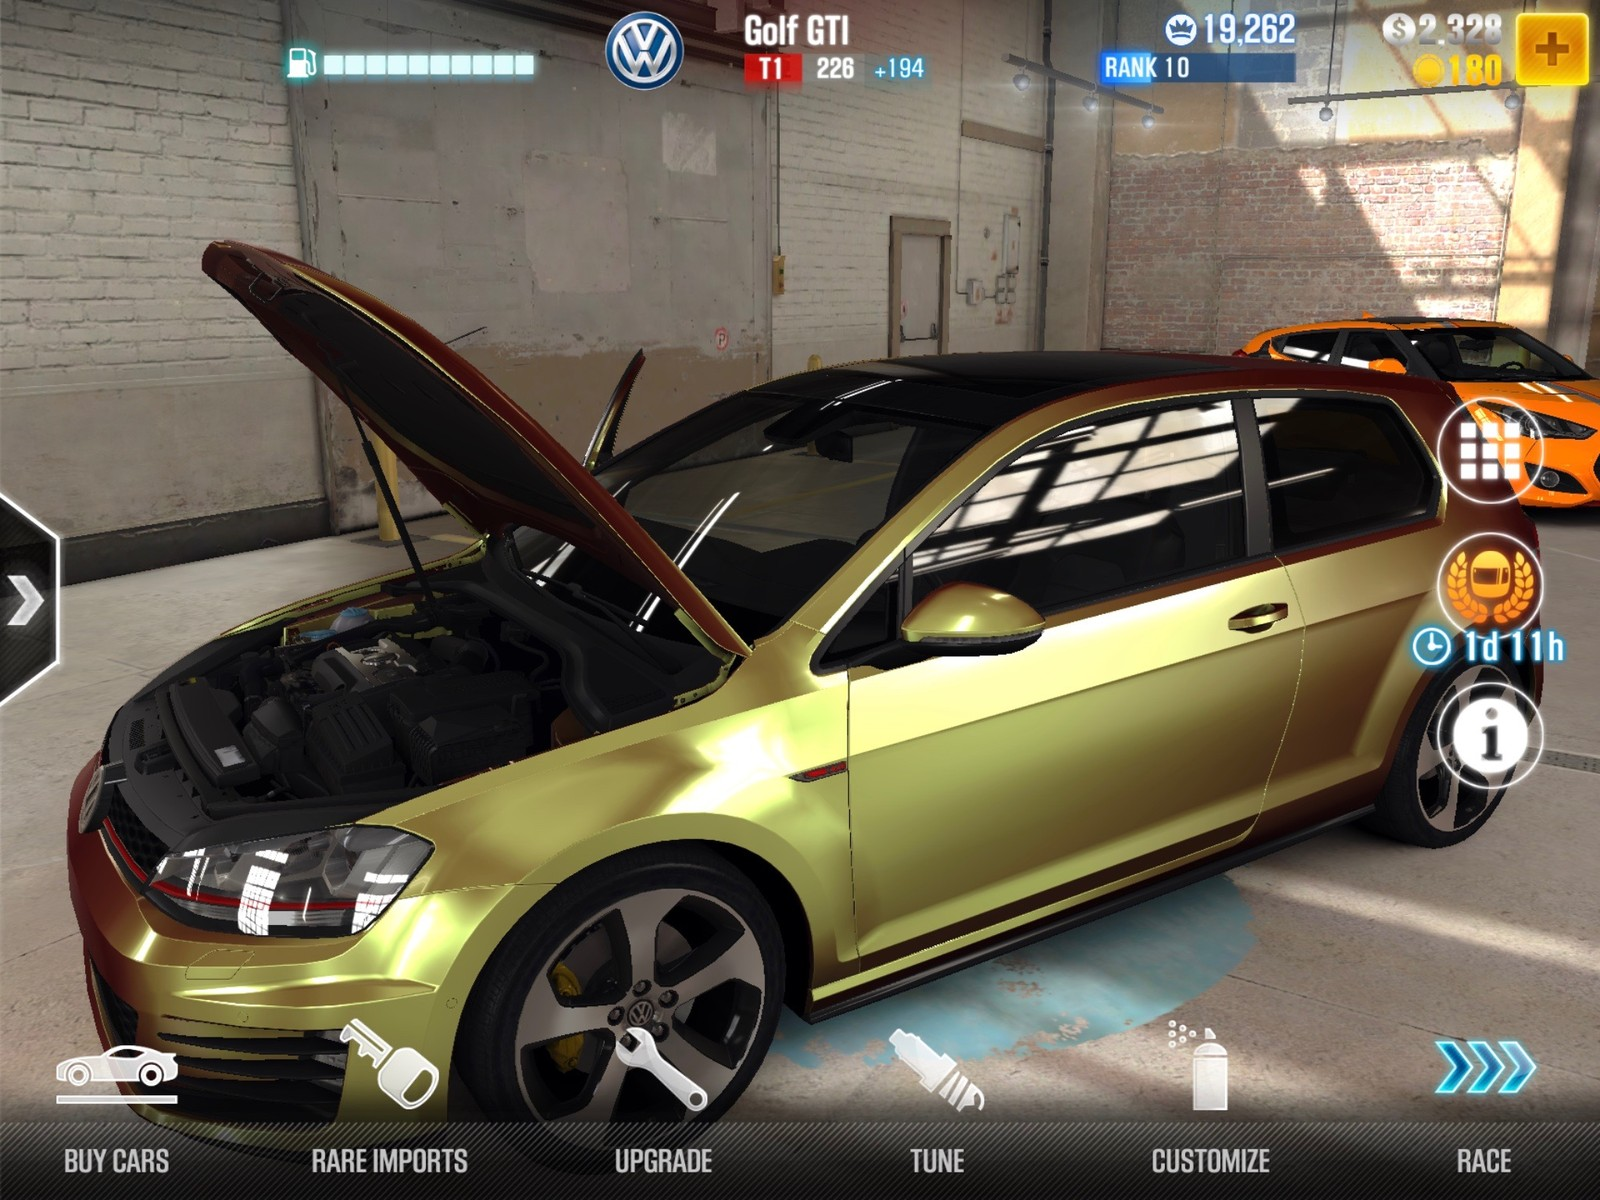 csr racing 2 game guide imore rh imore com Golf GT Golf GTI 2016